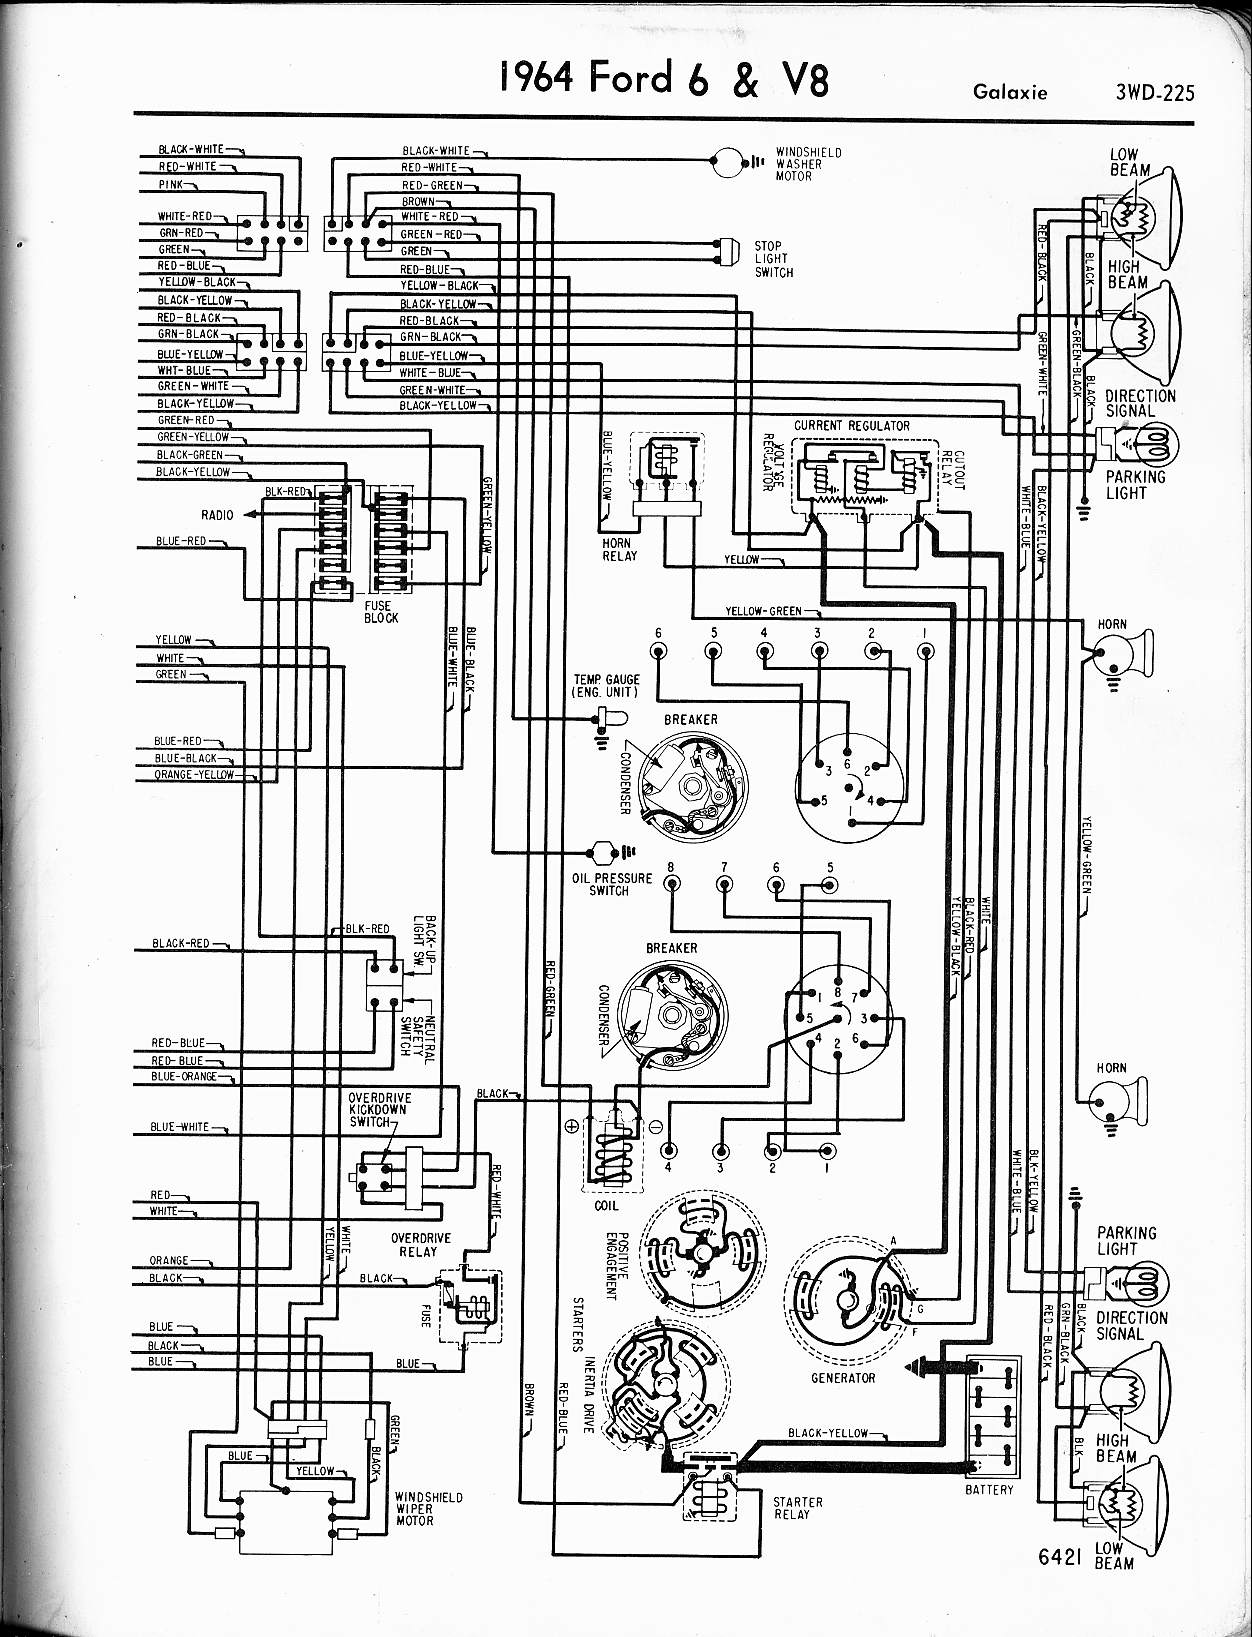 MWire5765 225 64 falcon wiring diagram 64 comet ignition wiring \u2022 wiring 64 valiant wiring diagram at readyjetset.co